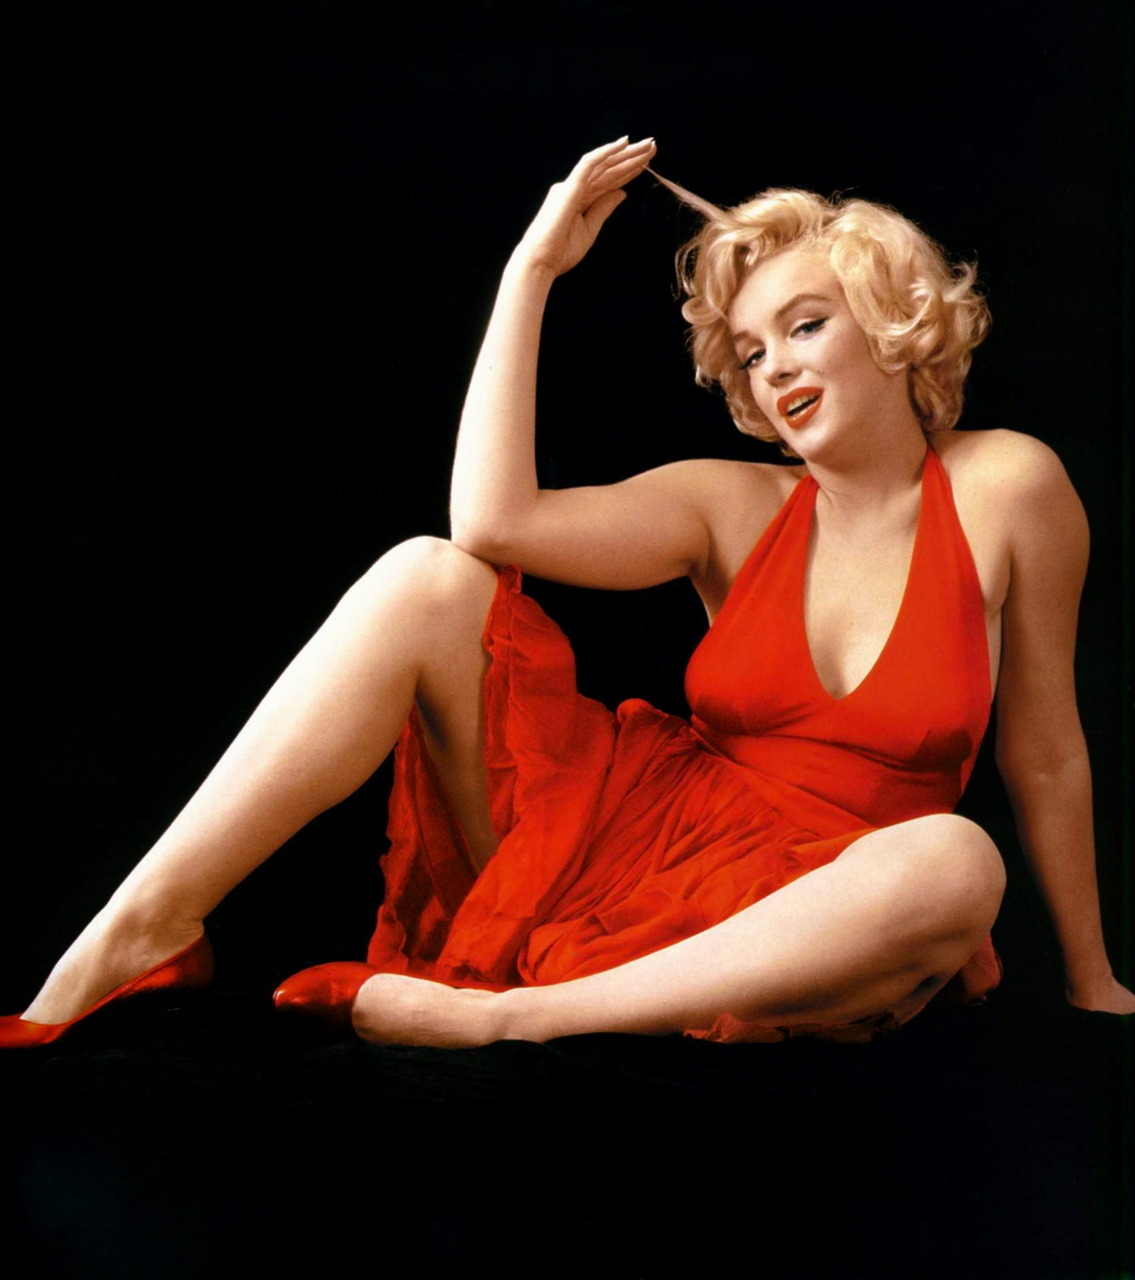 classiquehollywood:  theniftyfifties: Marilyn Monroe by Milton H. Greene, 1957.